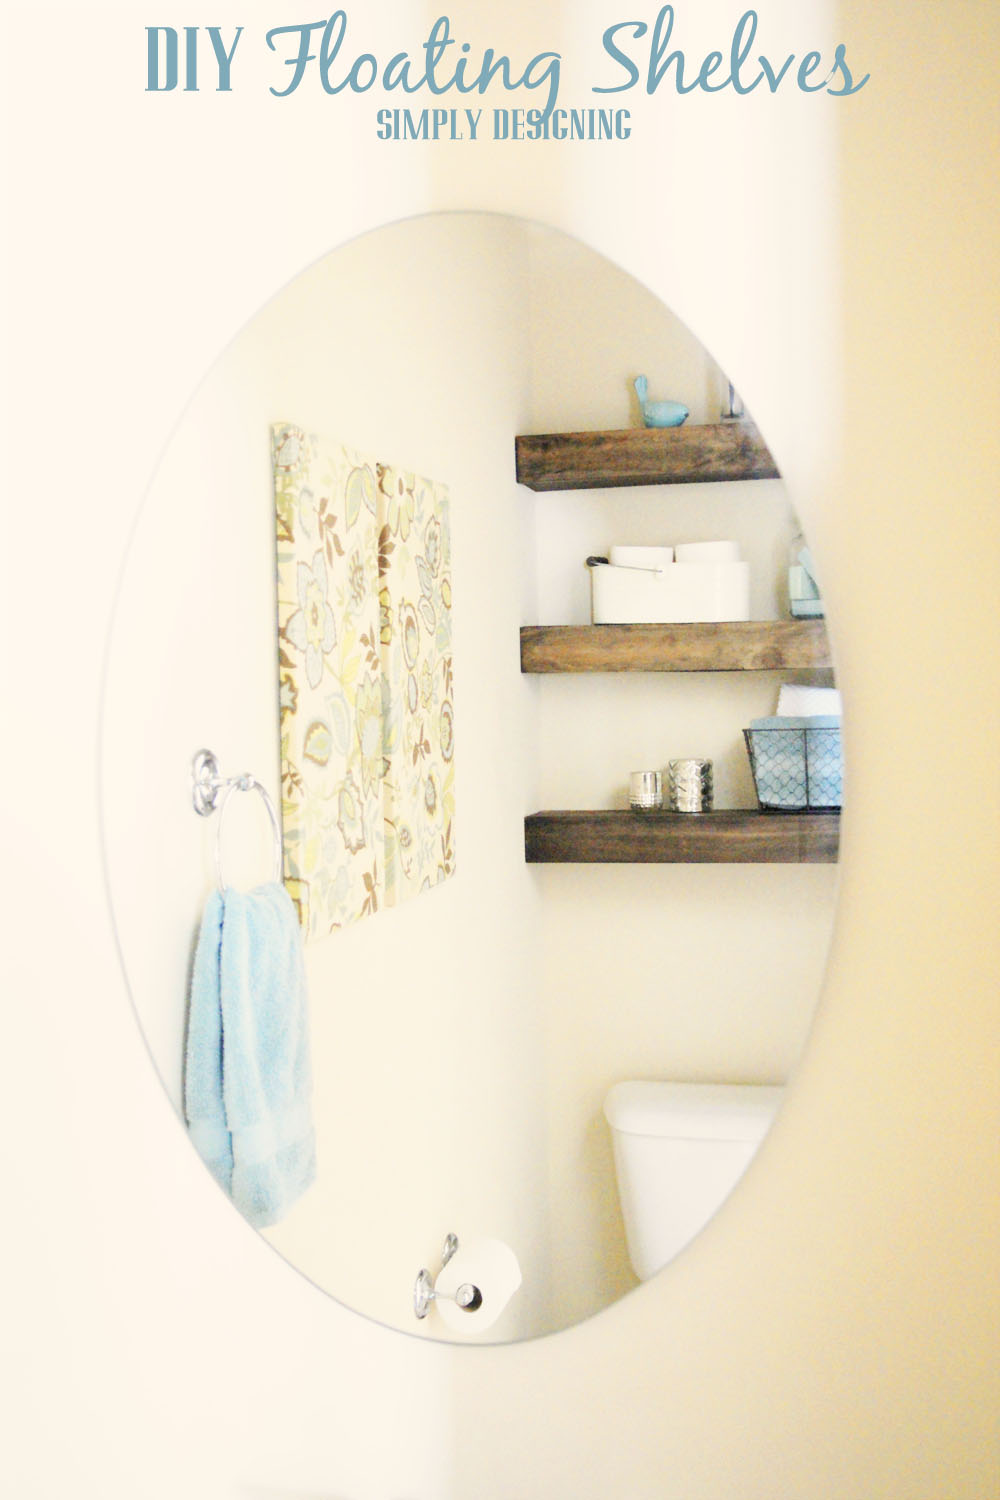 How to Build Floating Shelves | these make a perfect shelf for a bathroom or other small space |  #DIY #shelves #buildit #bathroom